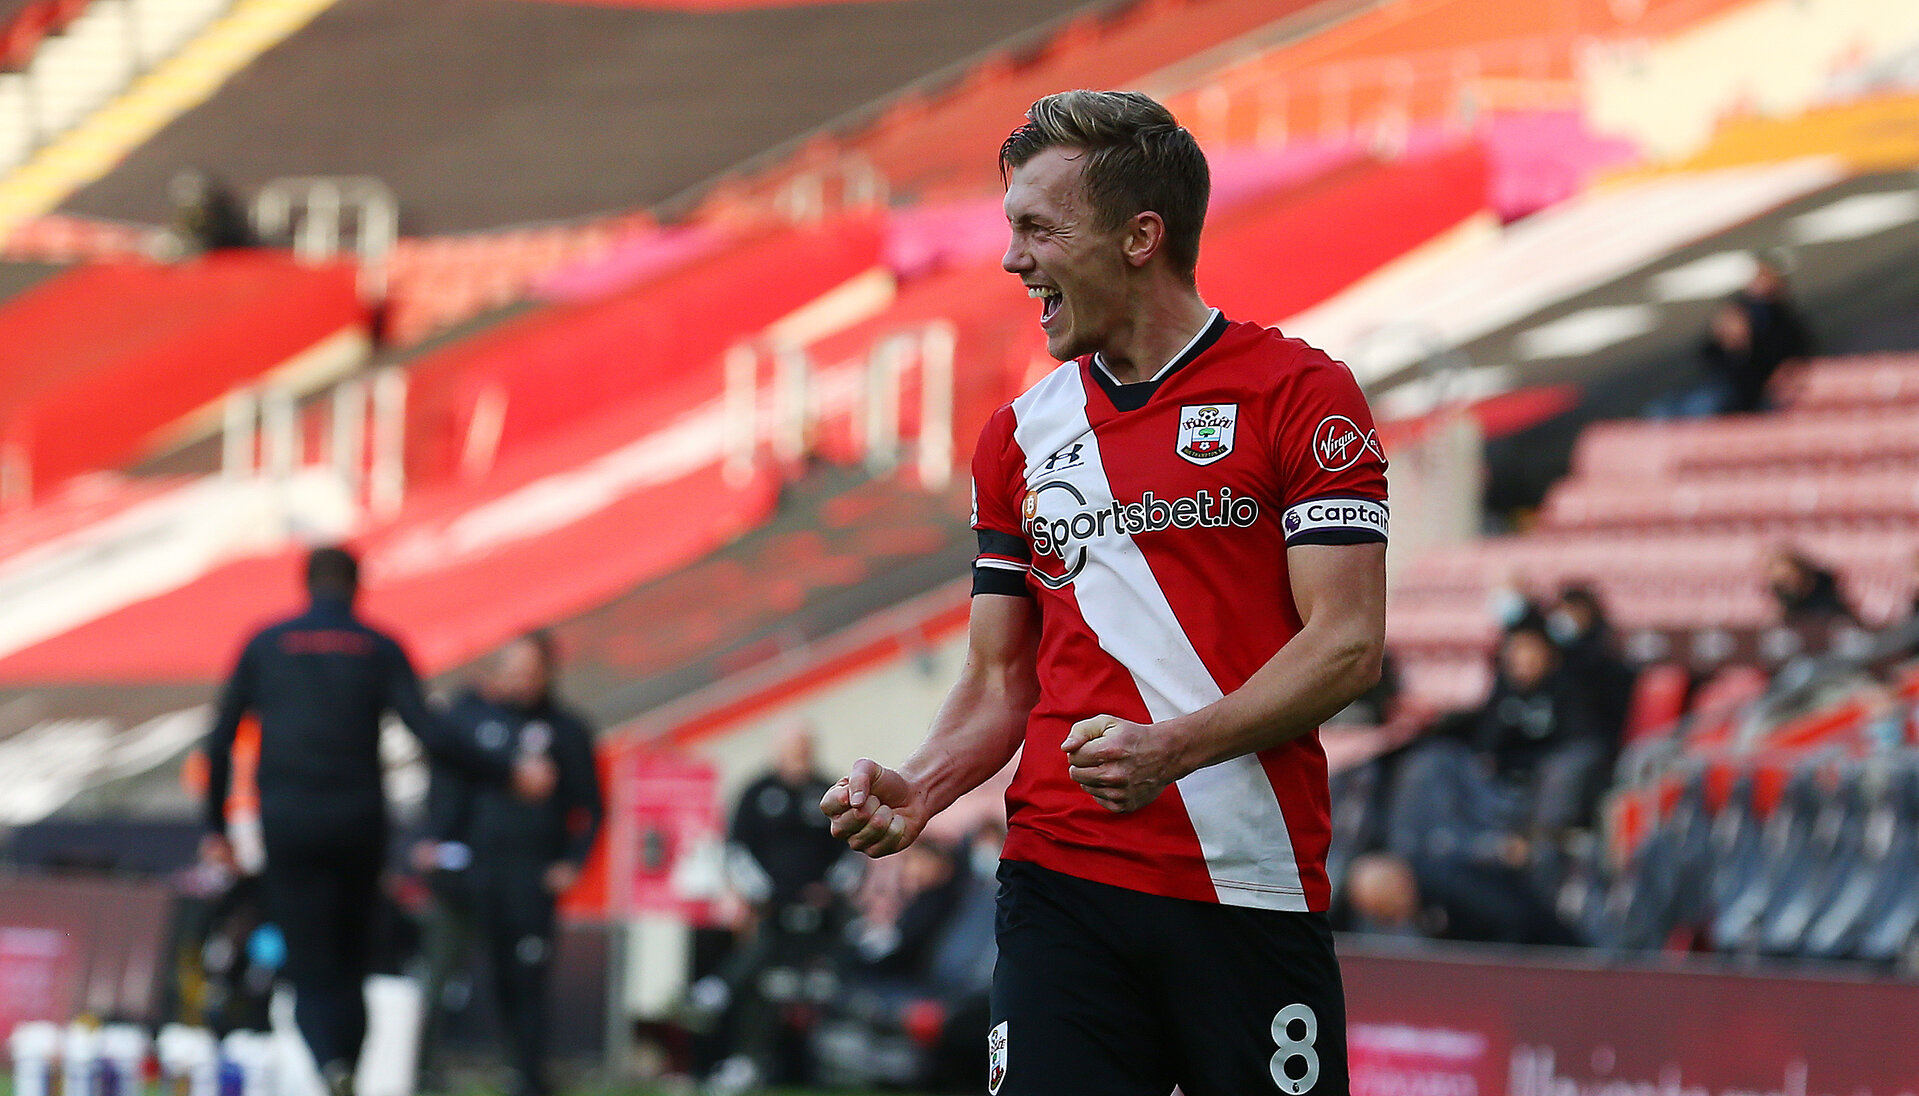 SOUTHAMPTON, ENGLAND - NOVEMBER 29: James Ward-Prowse of Southampton celebrates after making it 2-0 during the Premier League match between Southampton and Manchester United at St Mary's Stadium on November 29, 2020 in Southampton, England. Sporting stadiums around the UK remain under strict restrictions due to the Coronavirus Pandemic as Government social distancing laws prohibit fans inside venues resulting in games being played behind closed doors. (Photo by Matt Watson/Southampton FC via Getty Images)